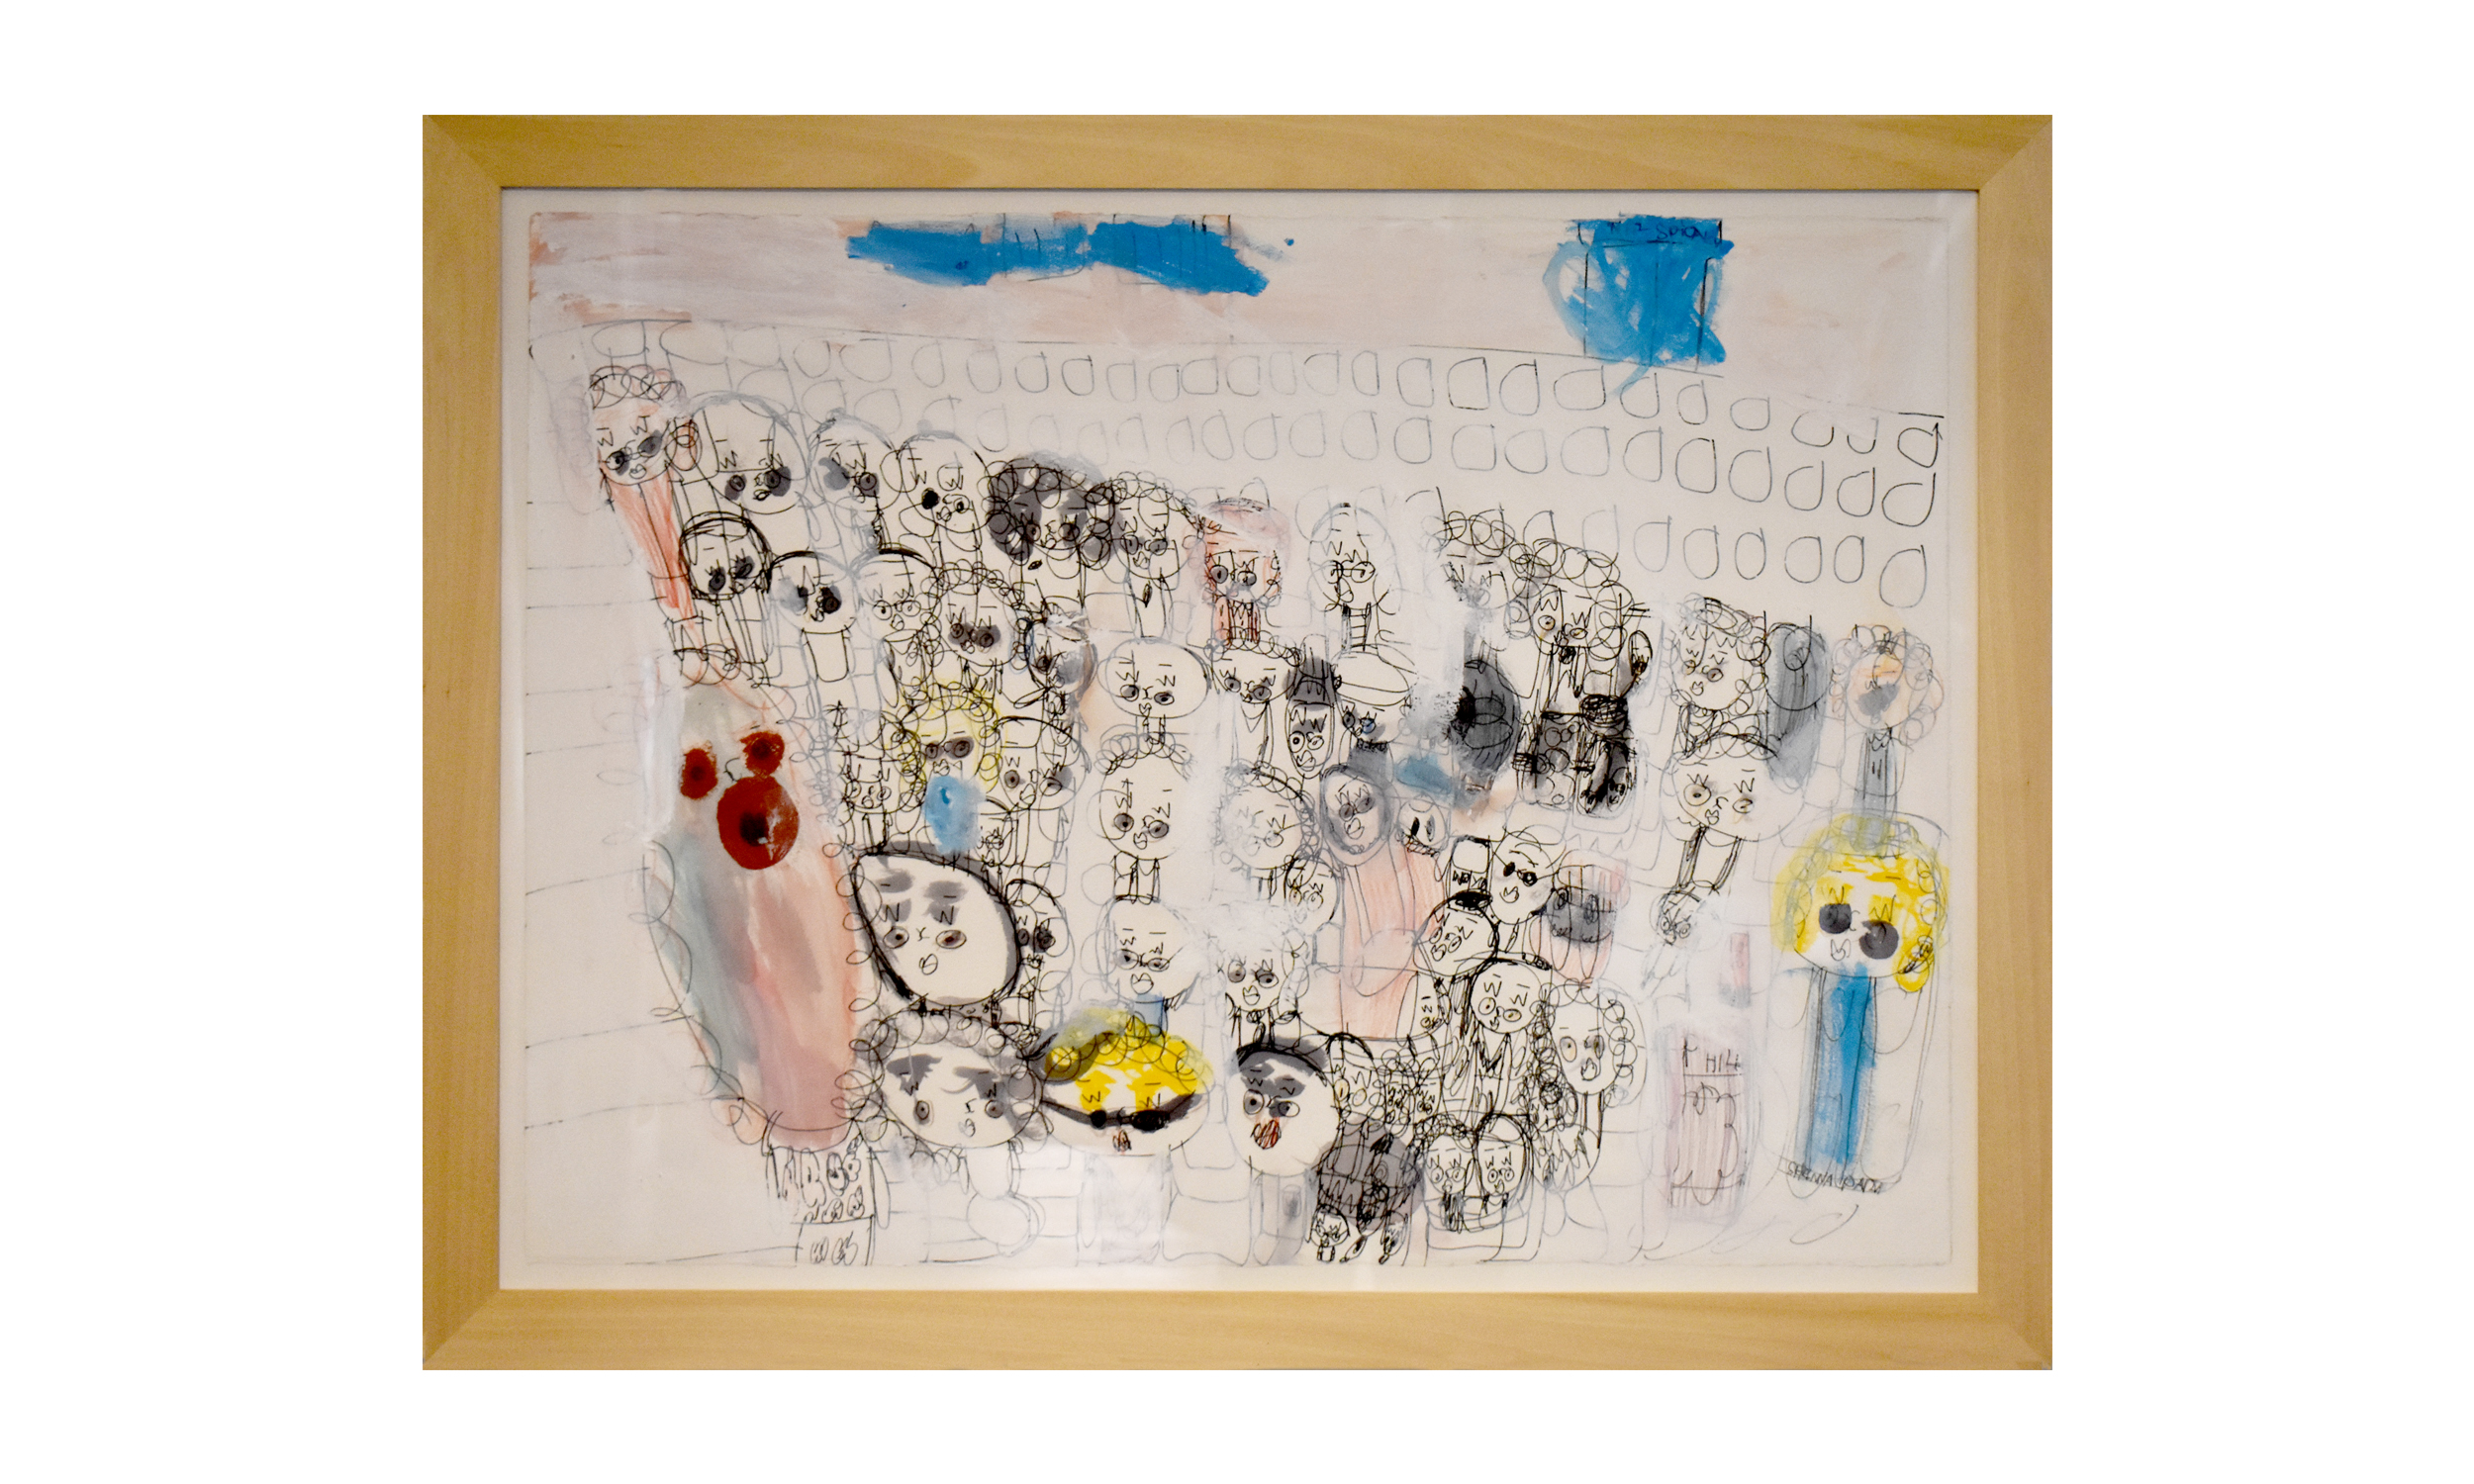 Friends from Shickmim, 1999  (By Andrea Budu-inspire), mixed media on paper, $650    Contact us for purchase